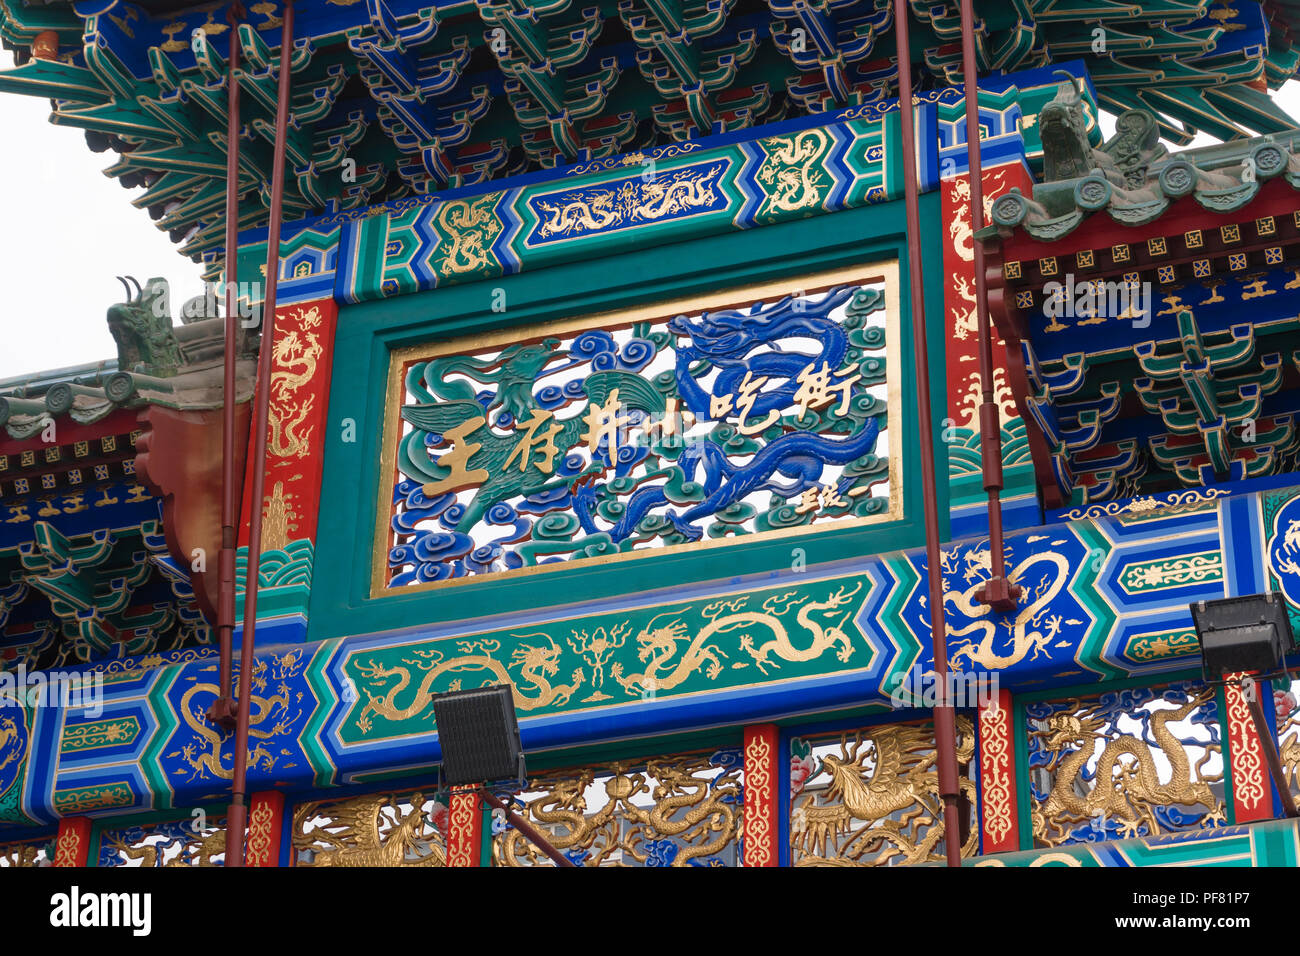 Archway at the Wangfujing Snack Street in Beijing - Stock Image